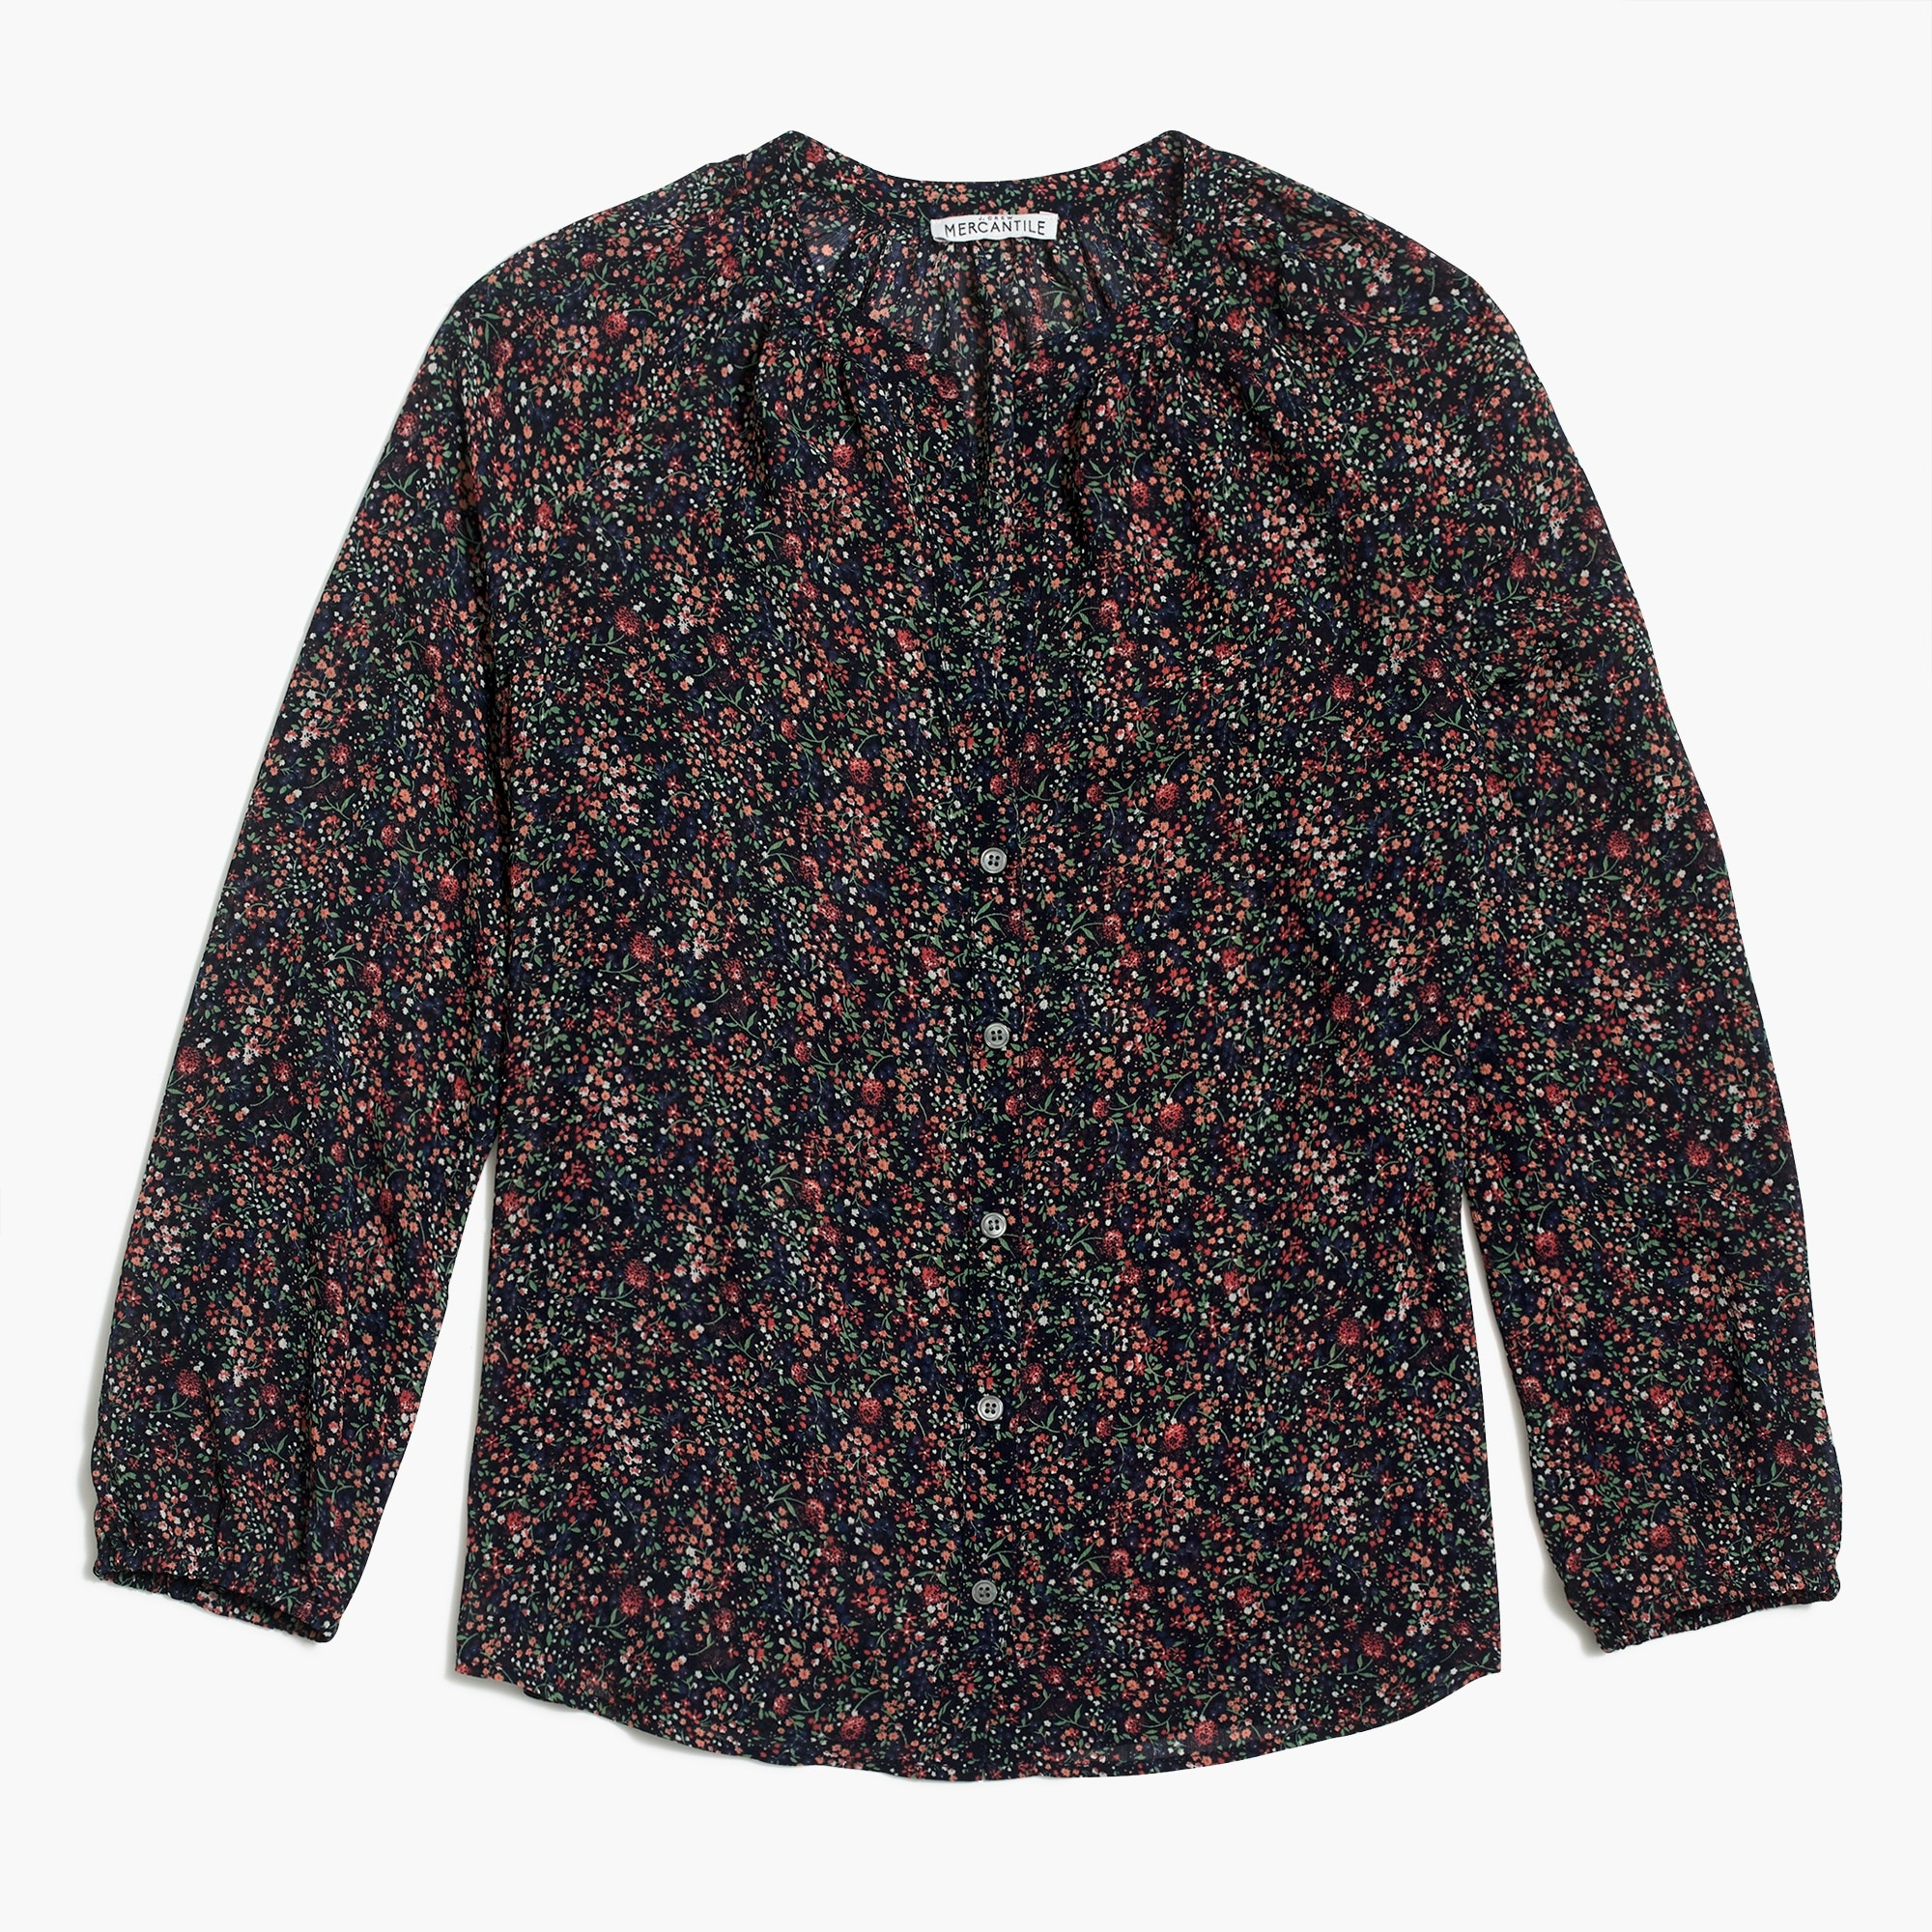 Printed V-neck three-quarter sleeve top